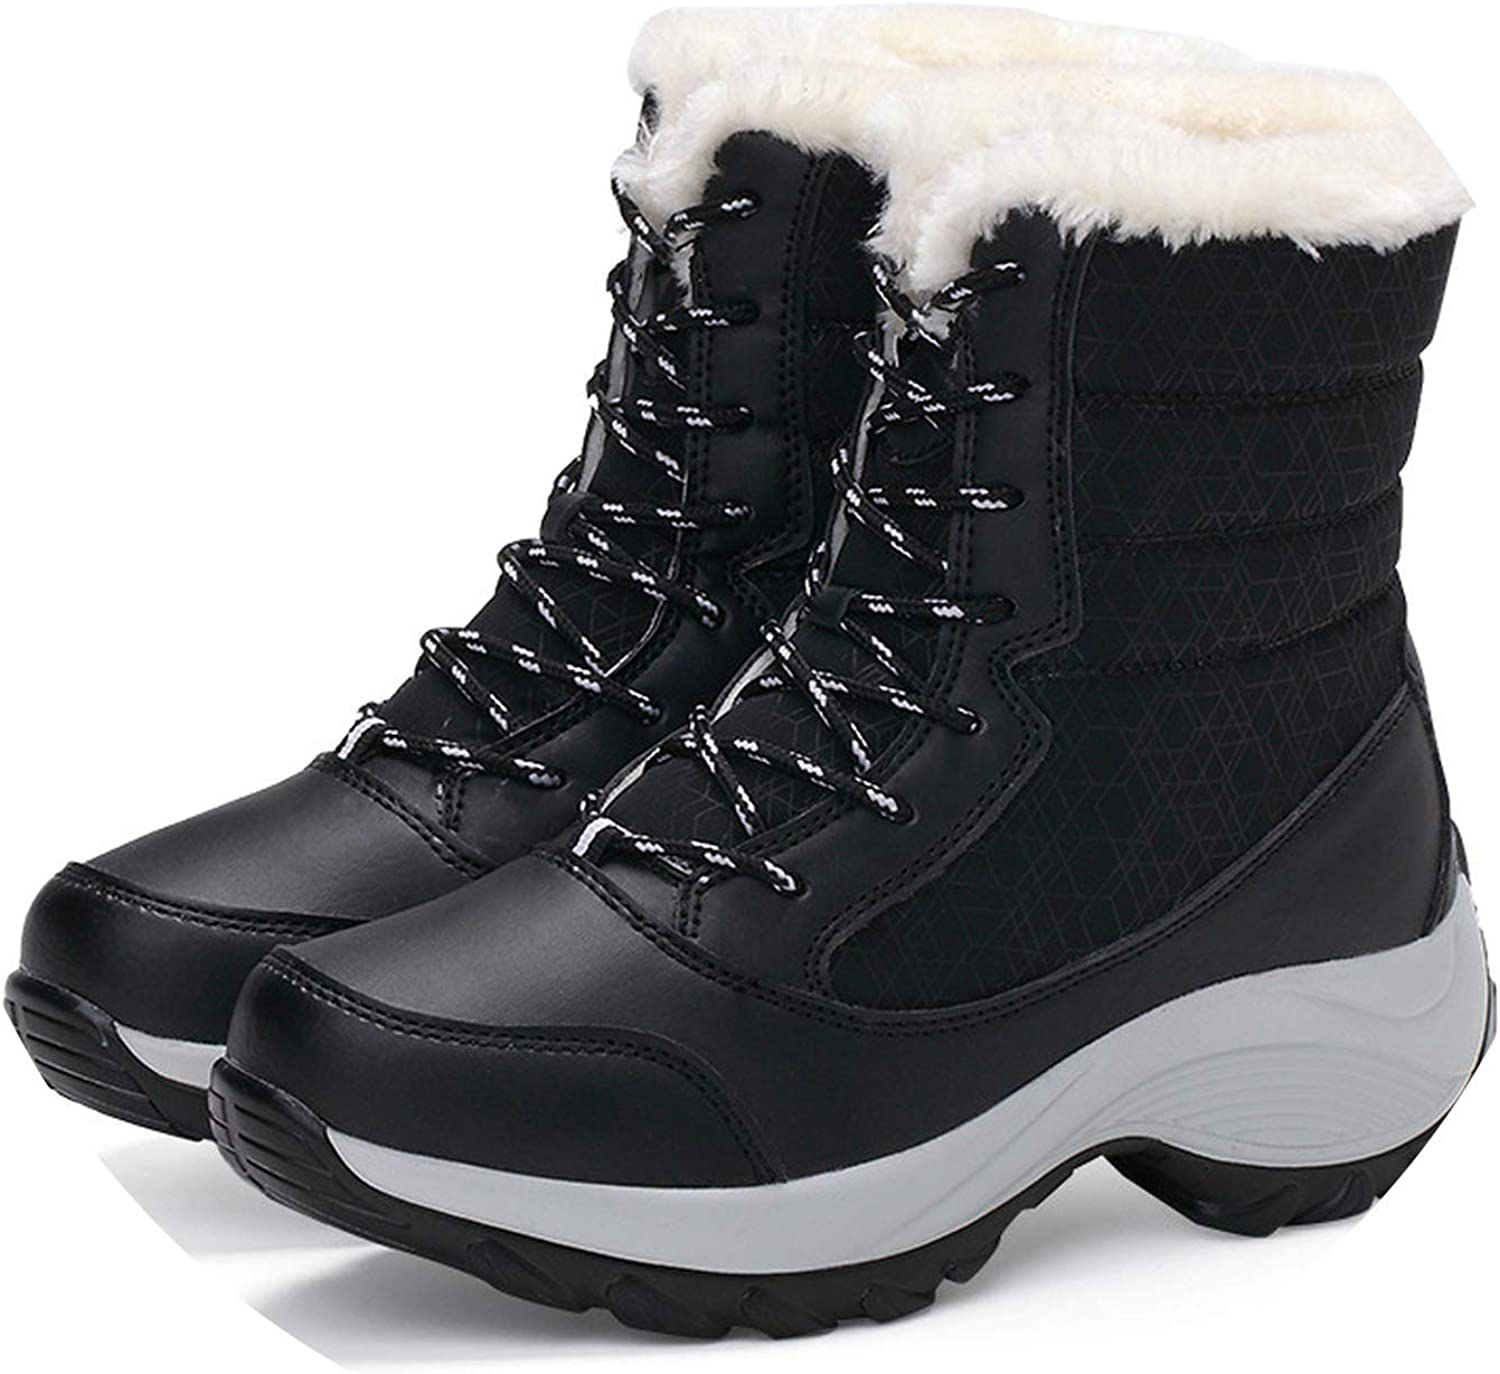 Crazy-Shop Women Boots Keep Warm Women shoes Winter Warm Fur Snow Boots Plush Round Toe Ankle Boots Platform